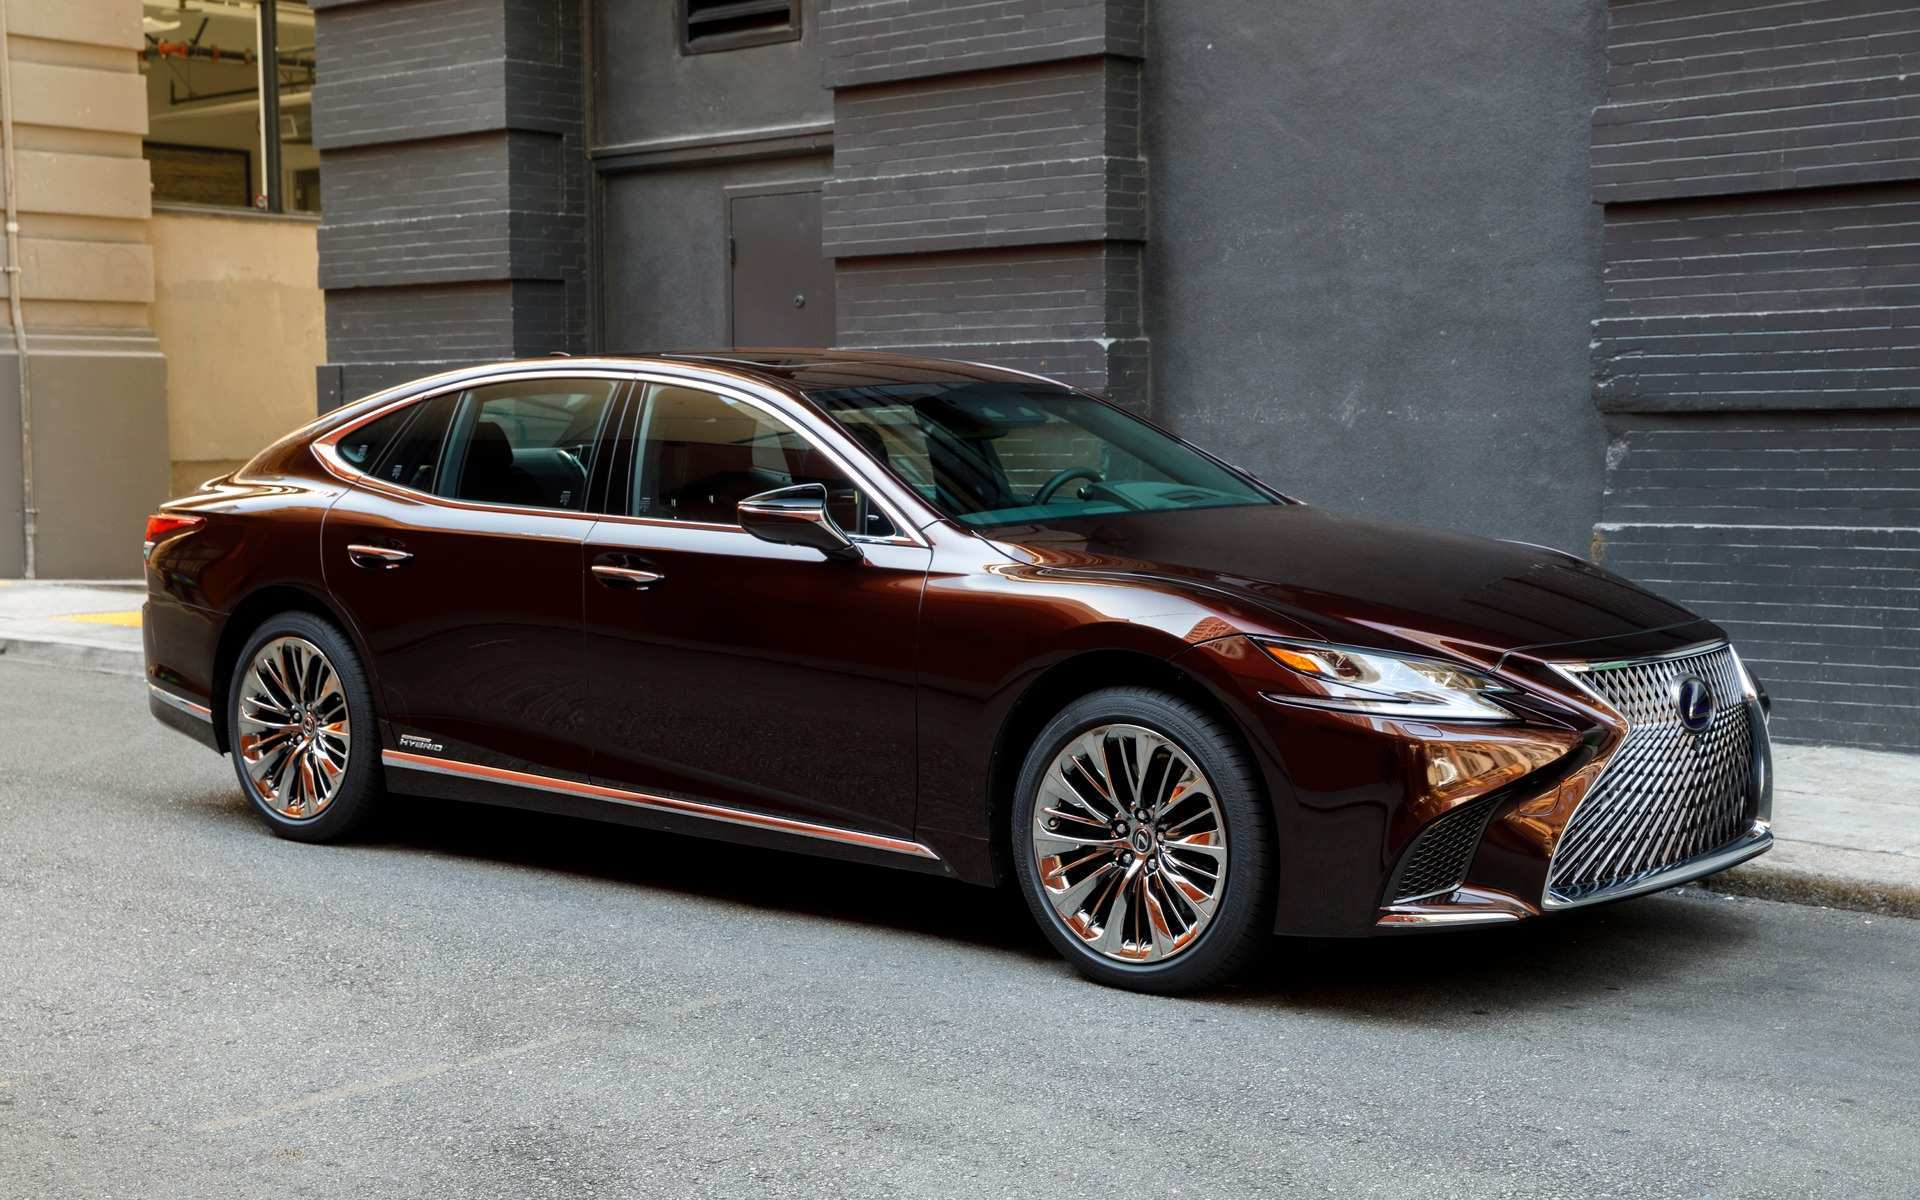 99 The Best 2020 Lexus Ls 500 V8 History